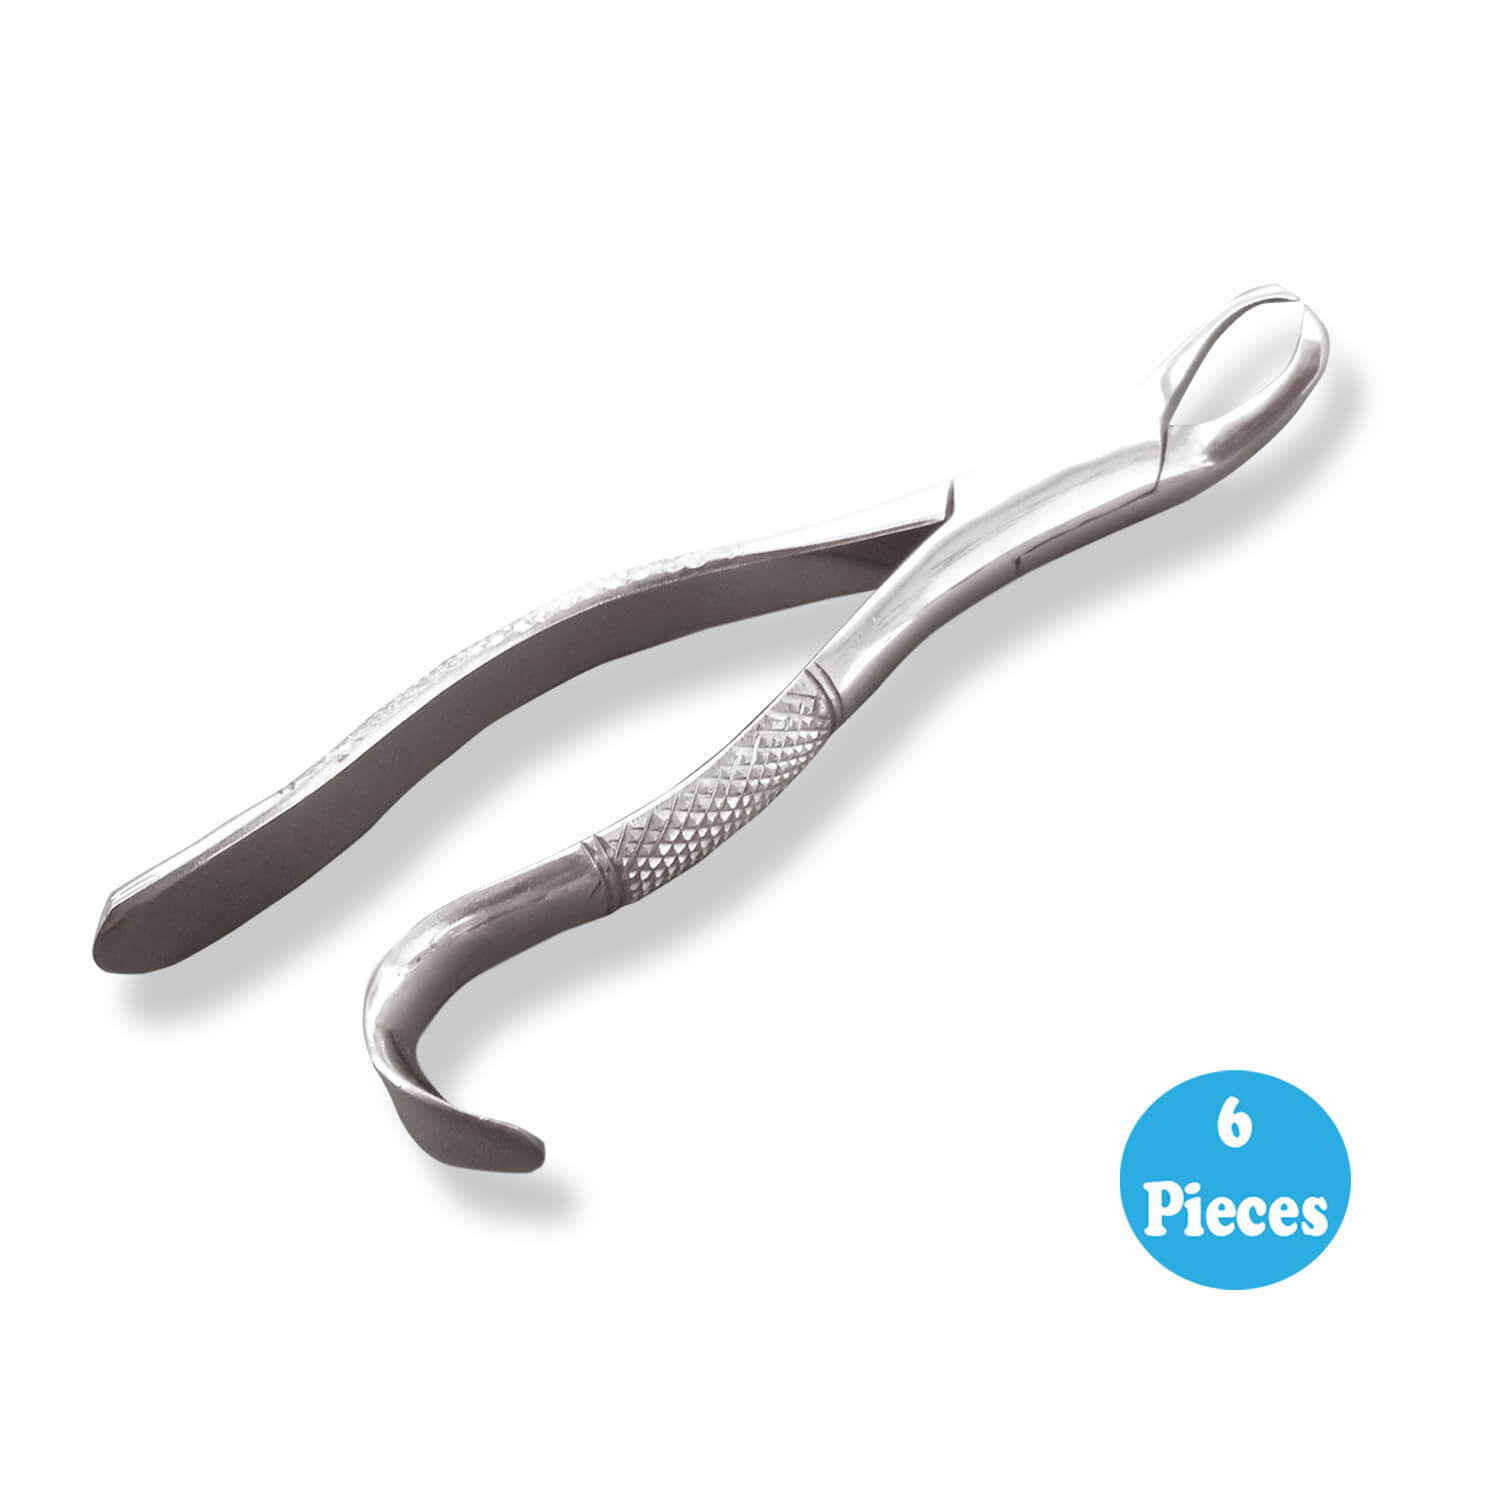 6 Extracting forceps Dental Surgical 16S